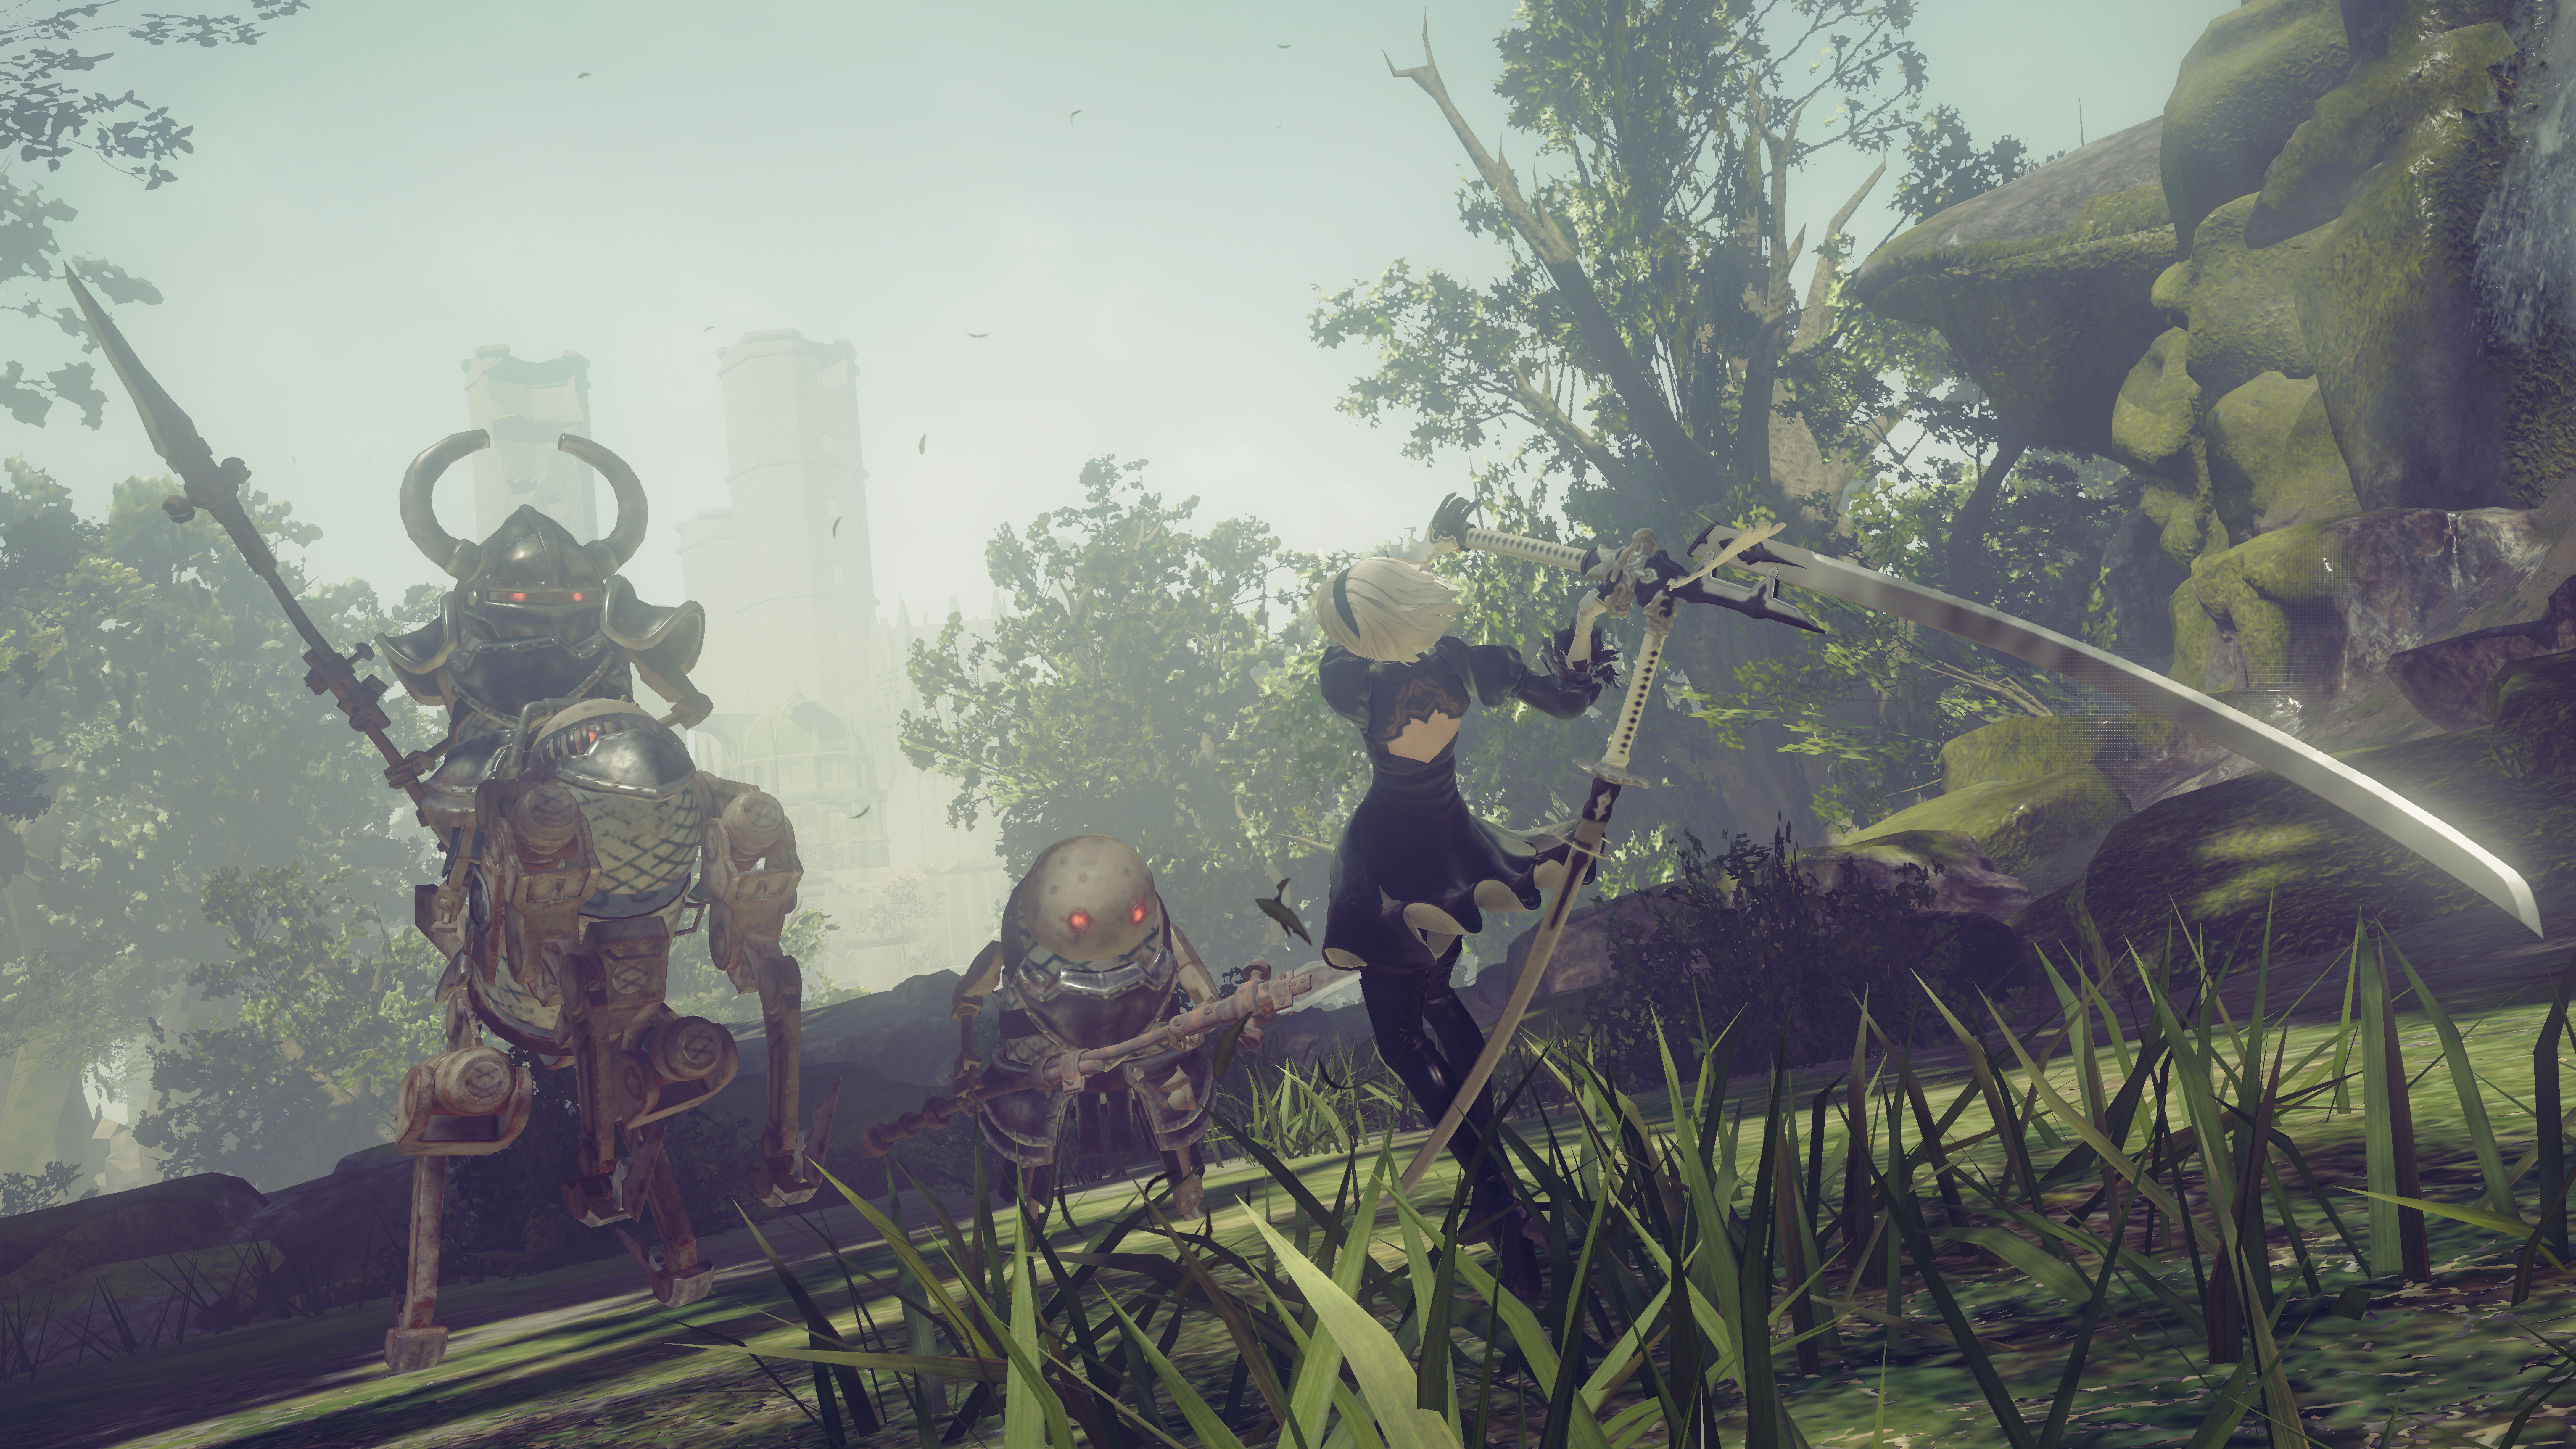 Nier Screenshot Online 2 Forest enemies 03 F 03 1486122828.02.2017 Nier: Automata Hands On Preview